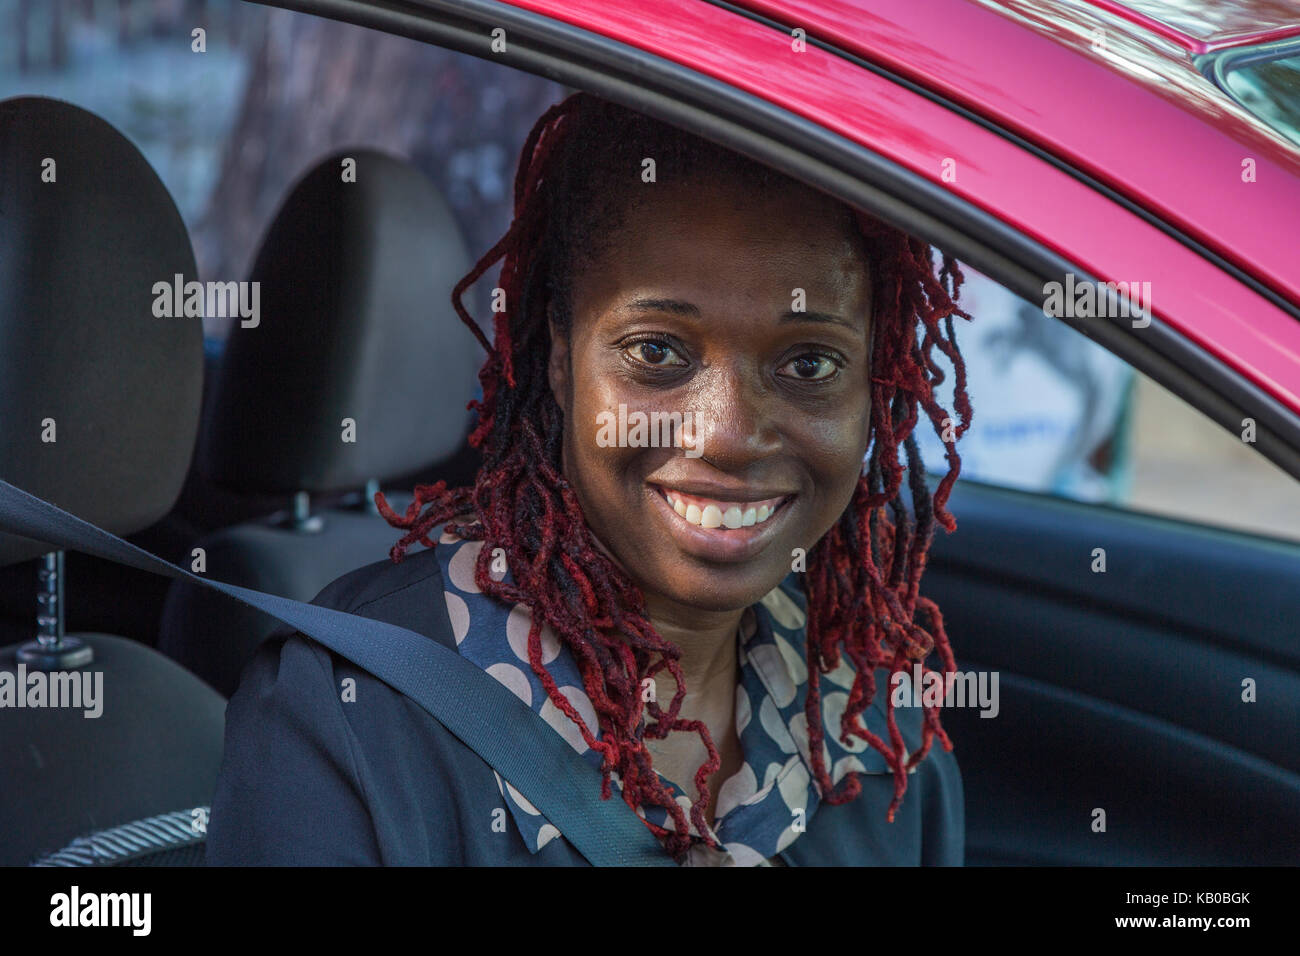 St. Johns, Antigua.  Young Woman in her Car. - Stock Image